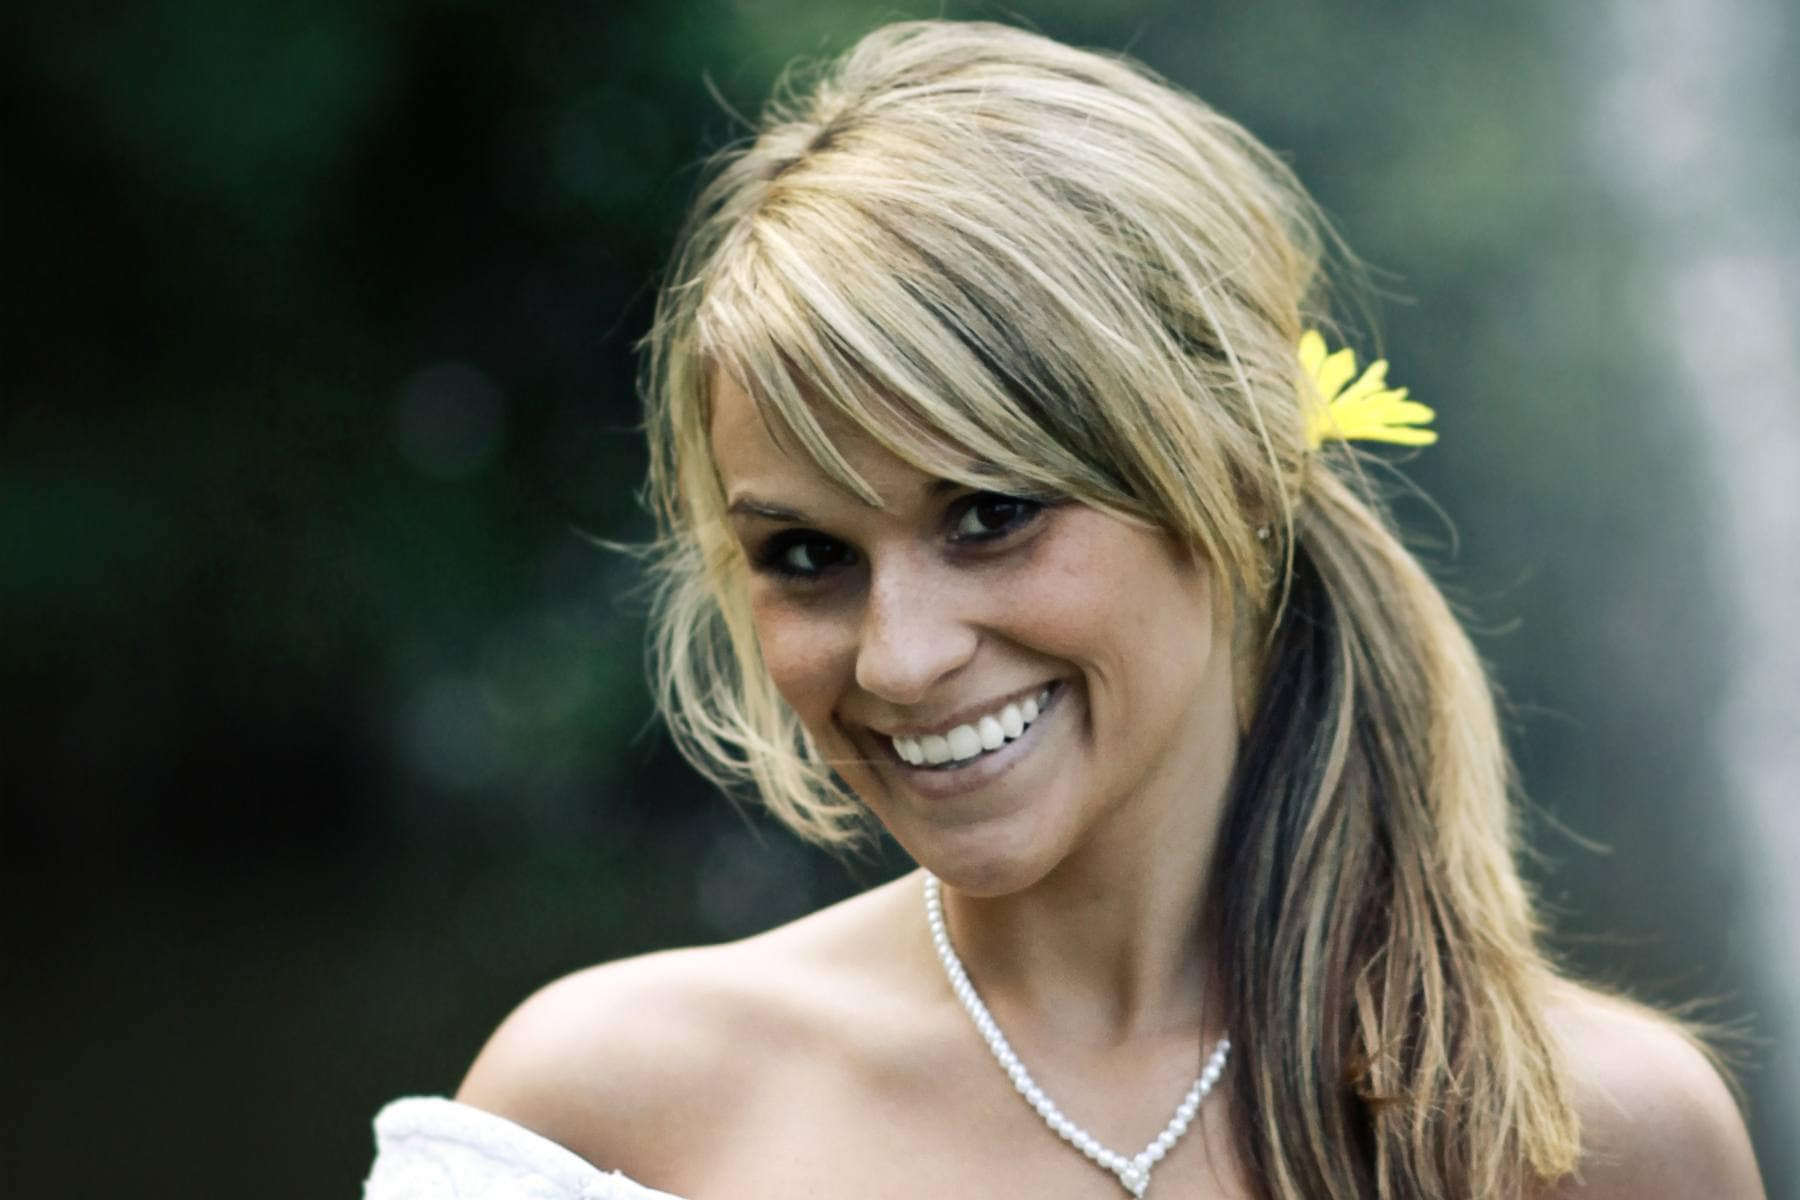 blonde bride wearing a white dress and necklace with her hair in a side ponytail with a flower hair accessory